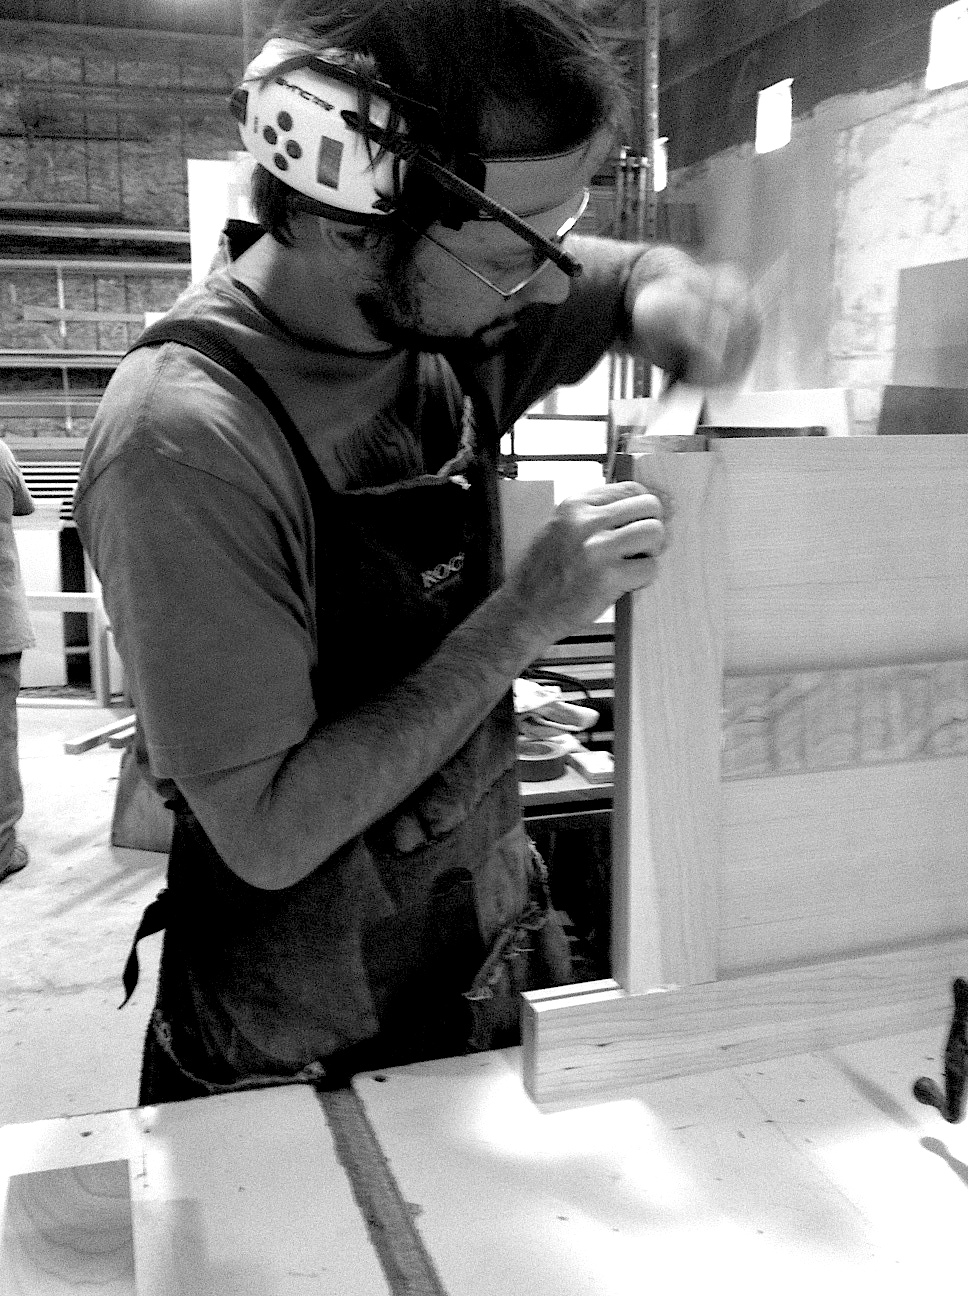 Jeff, joining a frame-and-panel cabinet